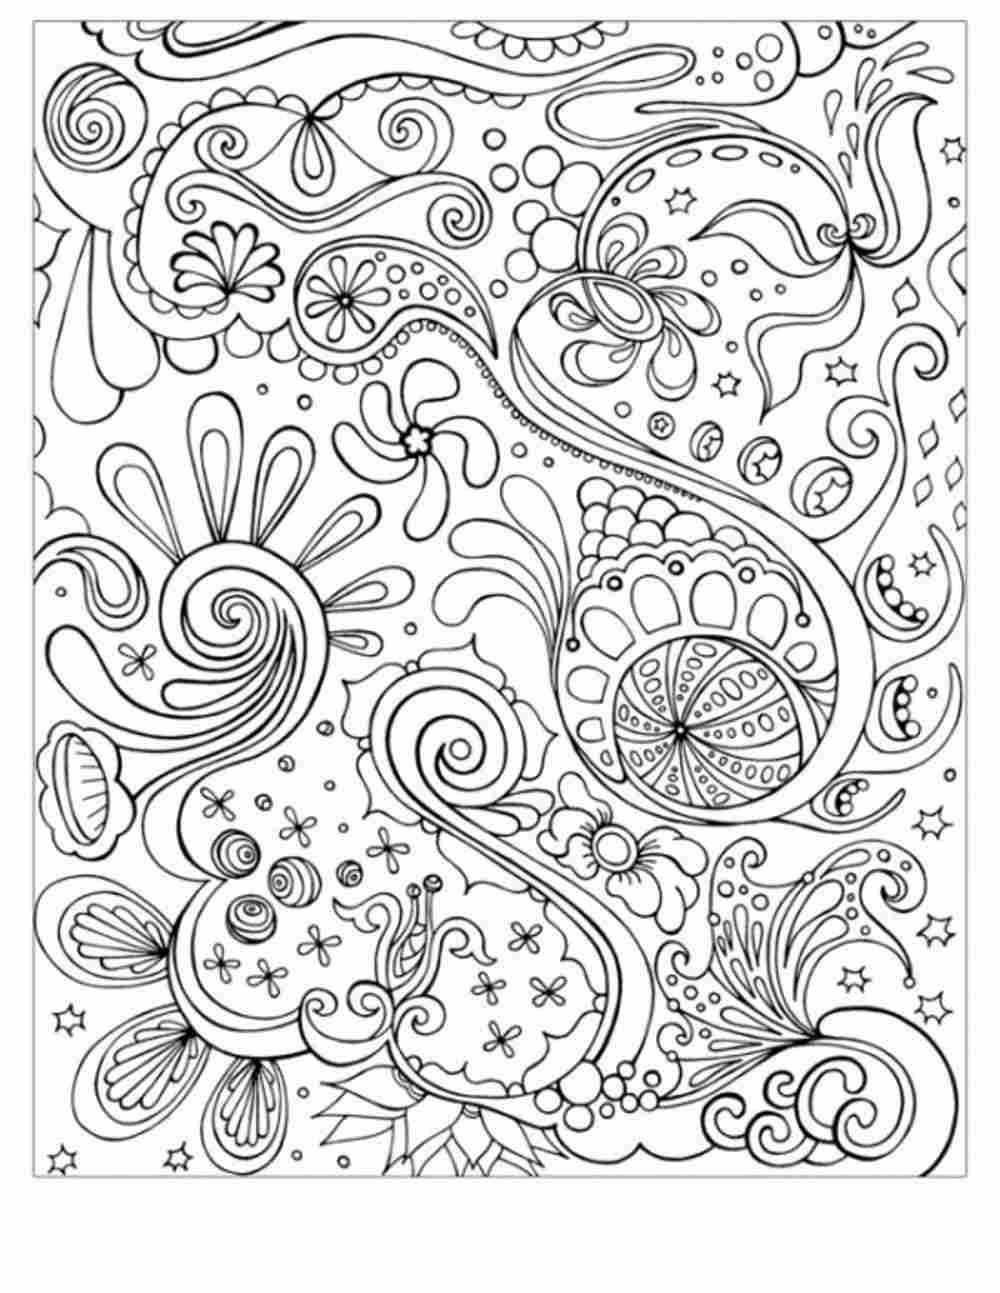 Online Adult Coloring Books  Abstract Coloring Pages For Adults Coloring Home